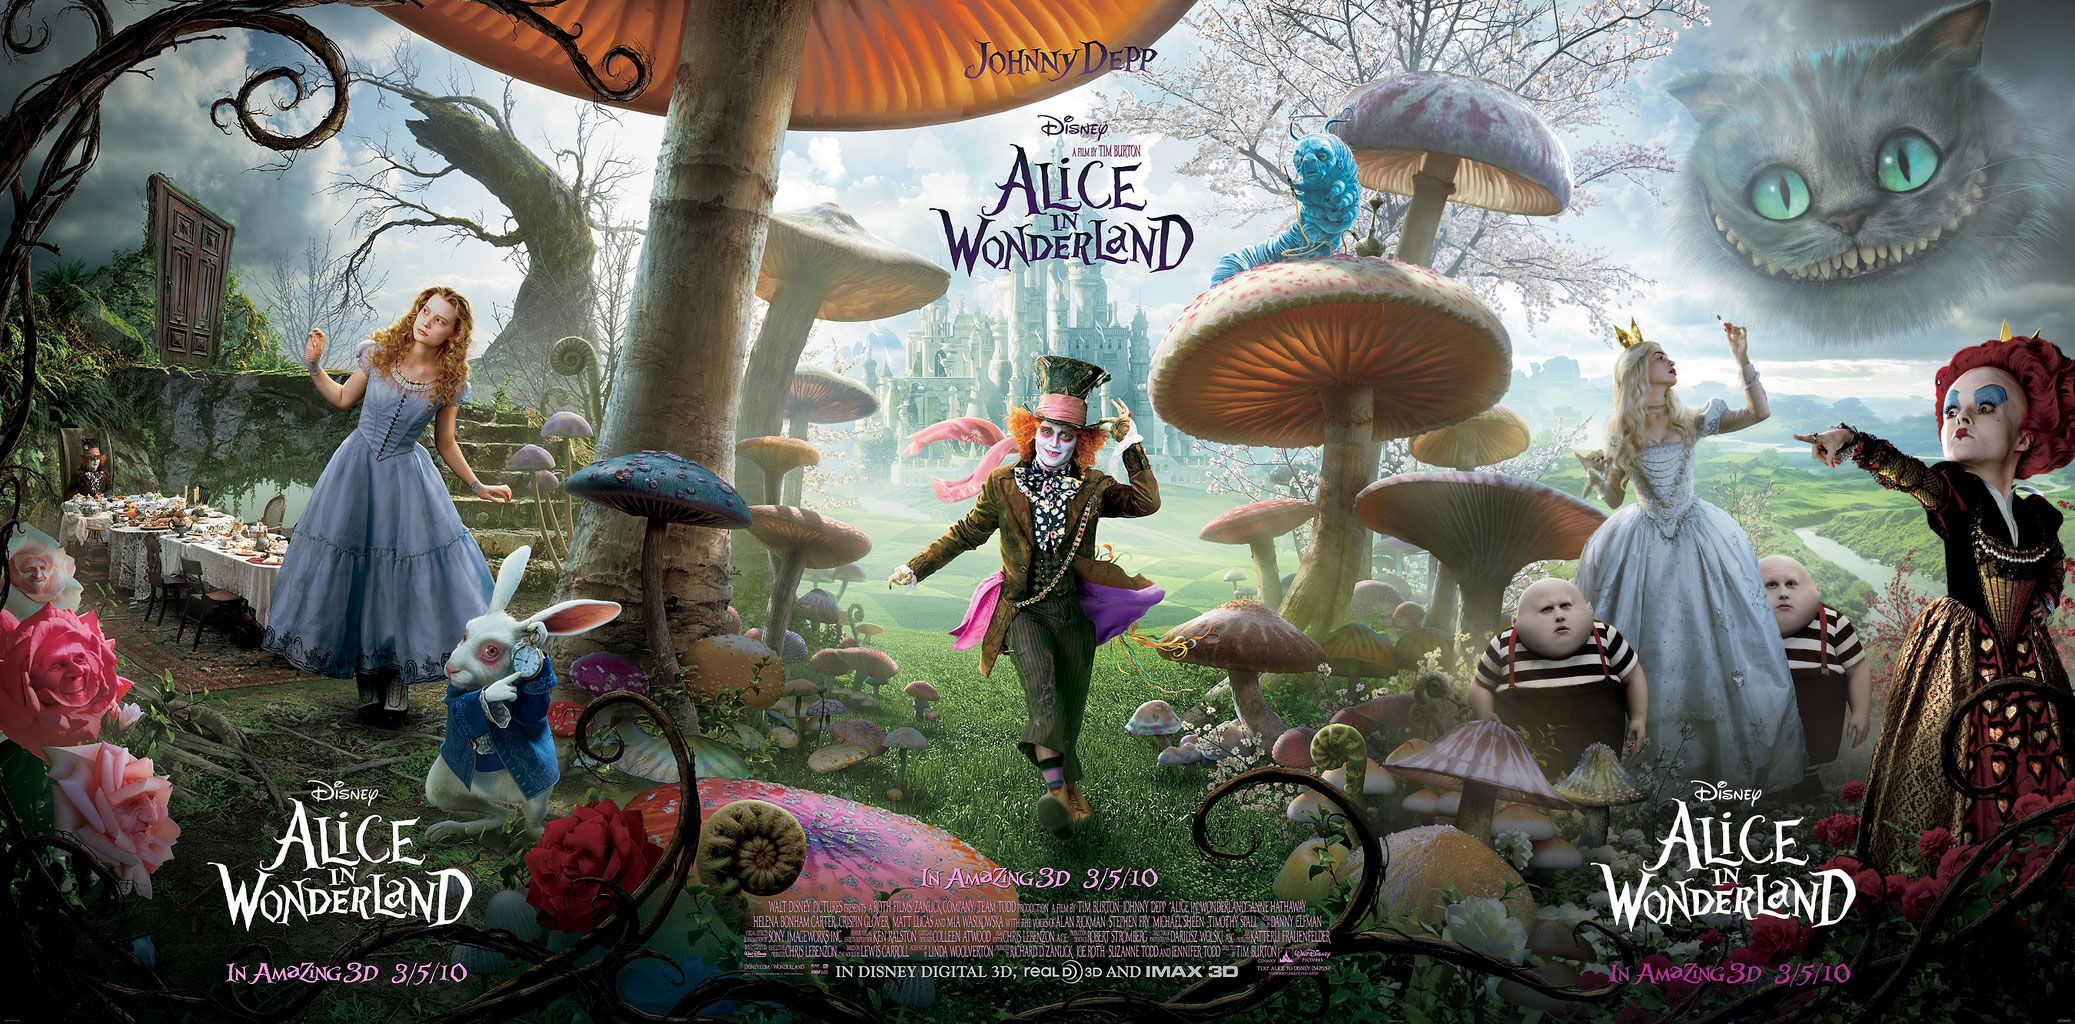 http://dietrichthrall.files.wordpress.com/2009/12/alice-in-wonderland-triptych-poster.jpg